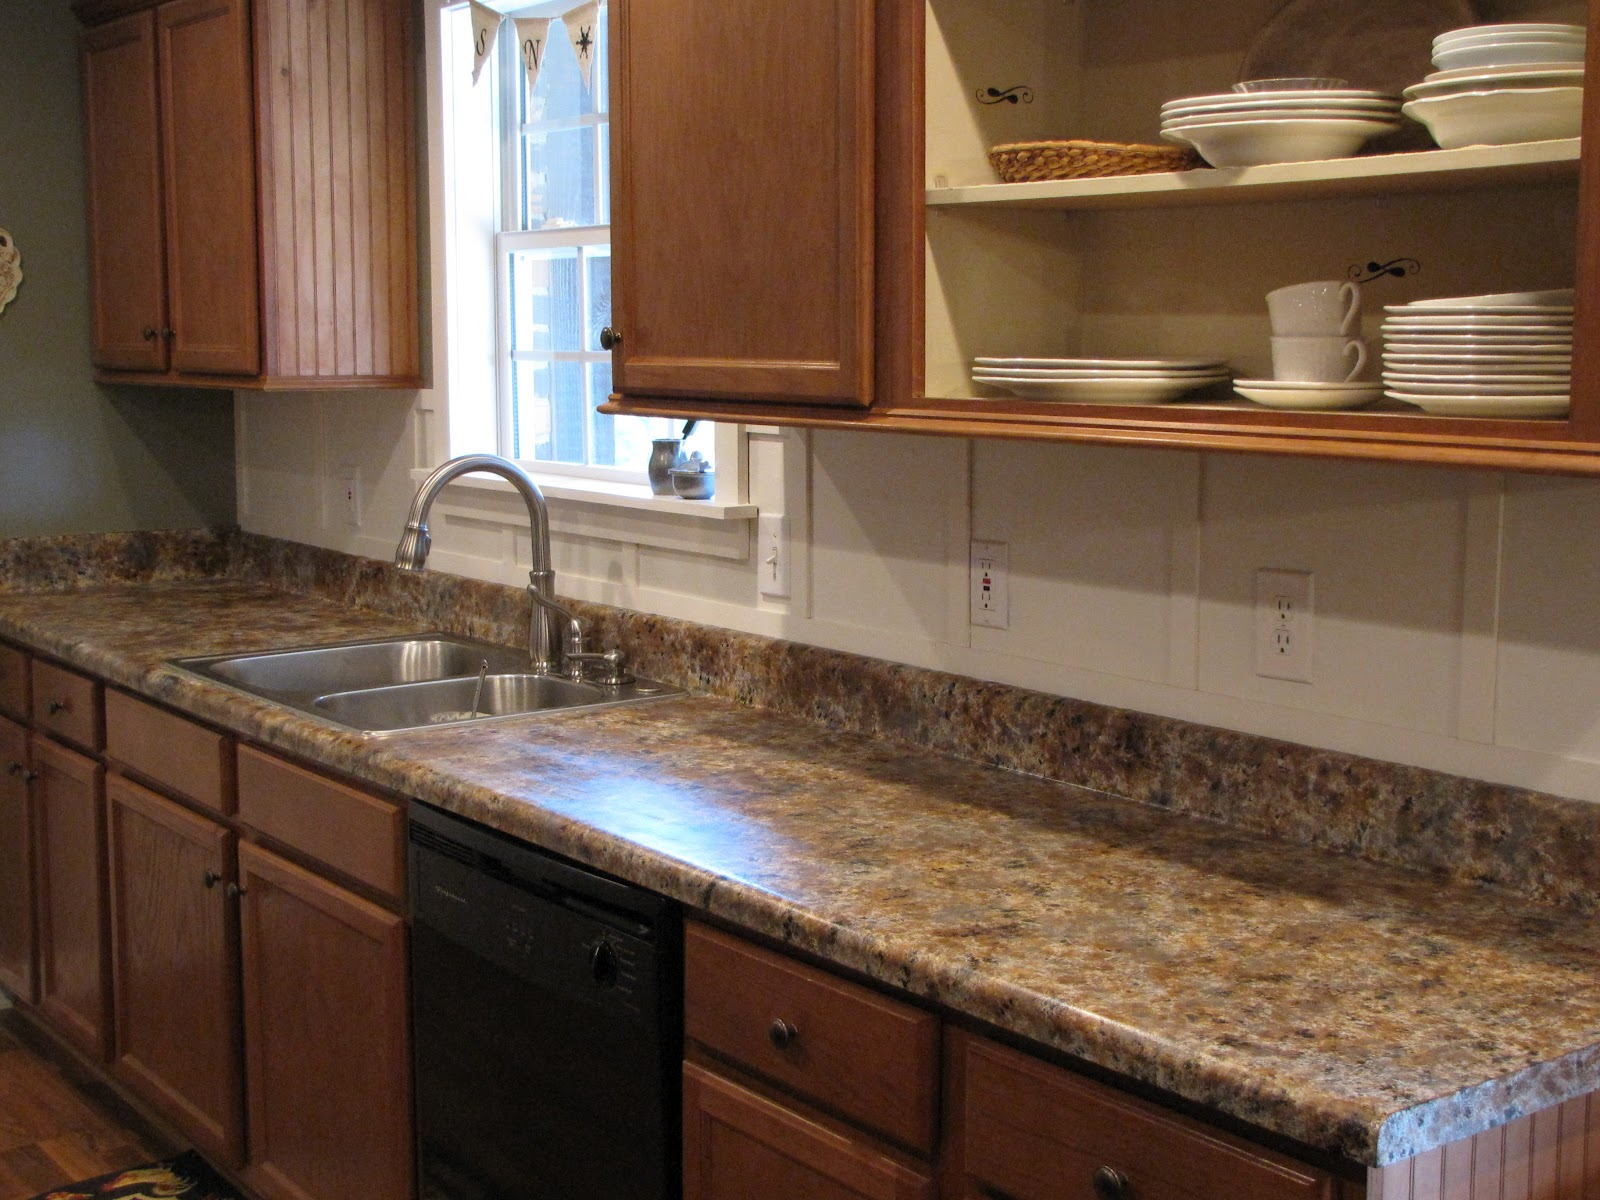 Kitchen Countertops Laminate : Painting Laminate Countertops In The Kitchen